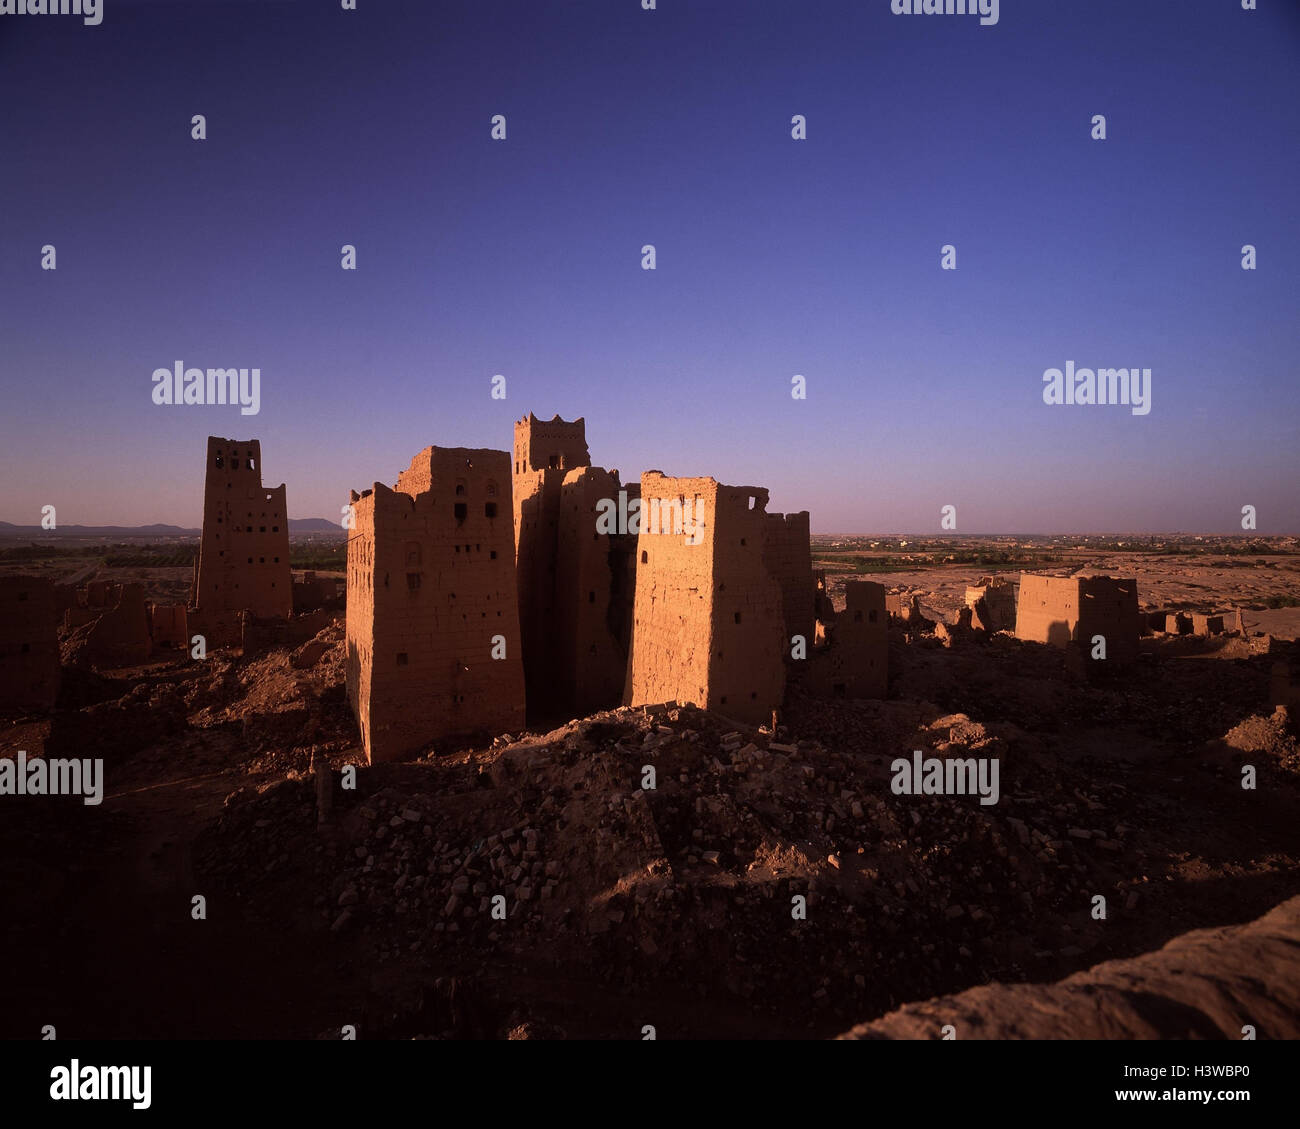 Yemen, Alt-Marib, town view, evening sun, Arabia, alto-in Arabic, peninsula, mucky construction, Old Town, decayed - Stock Image